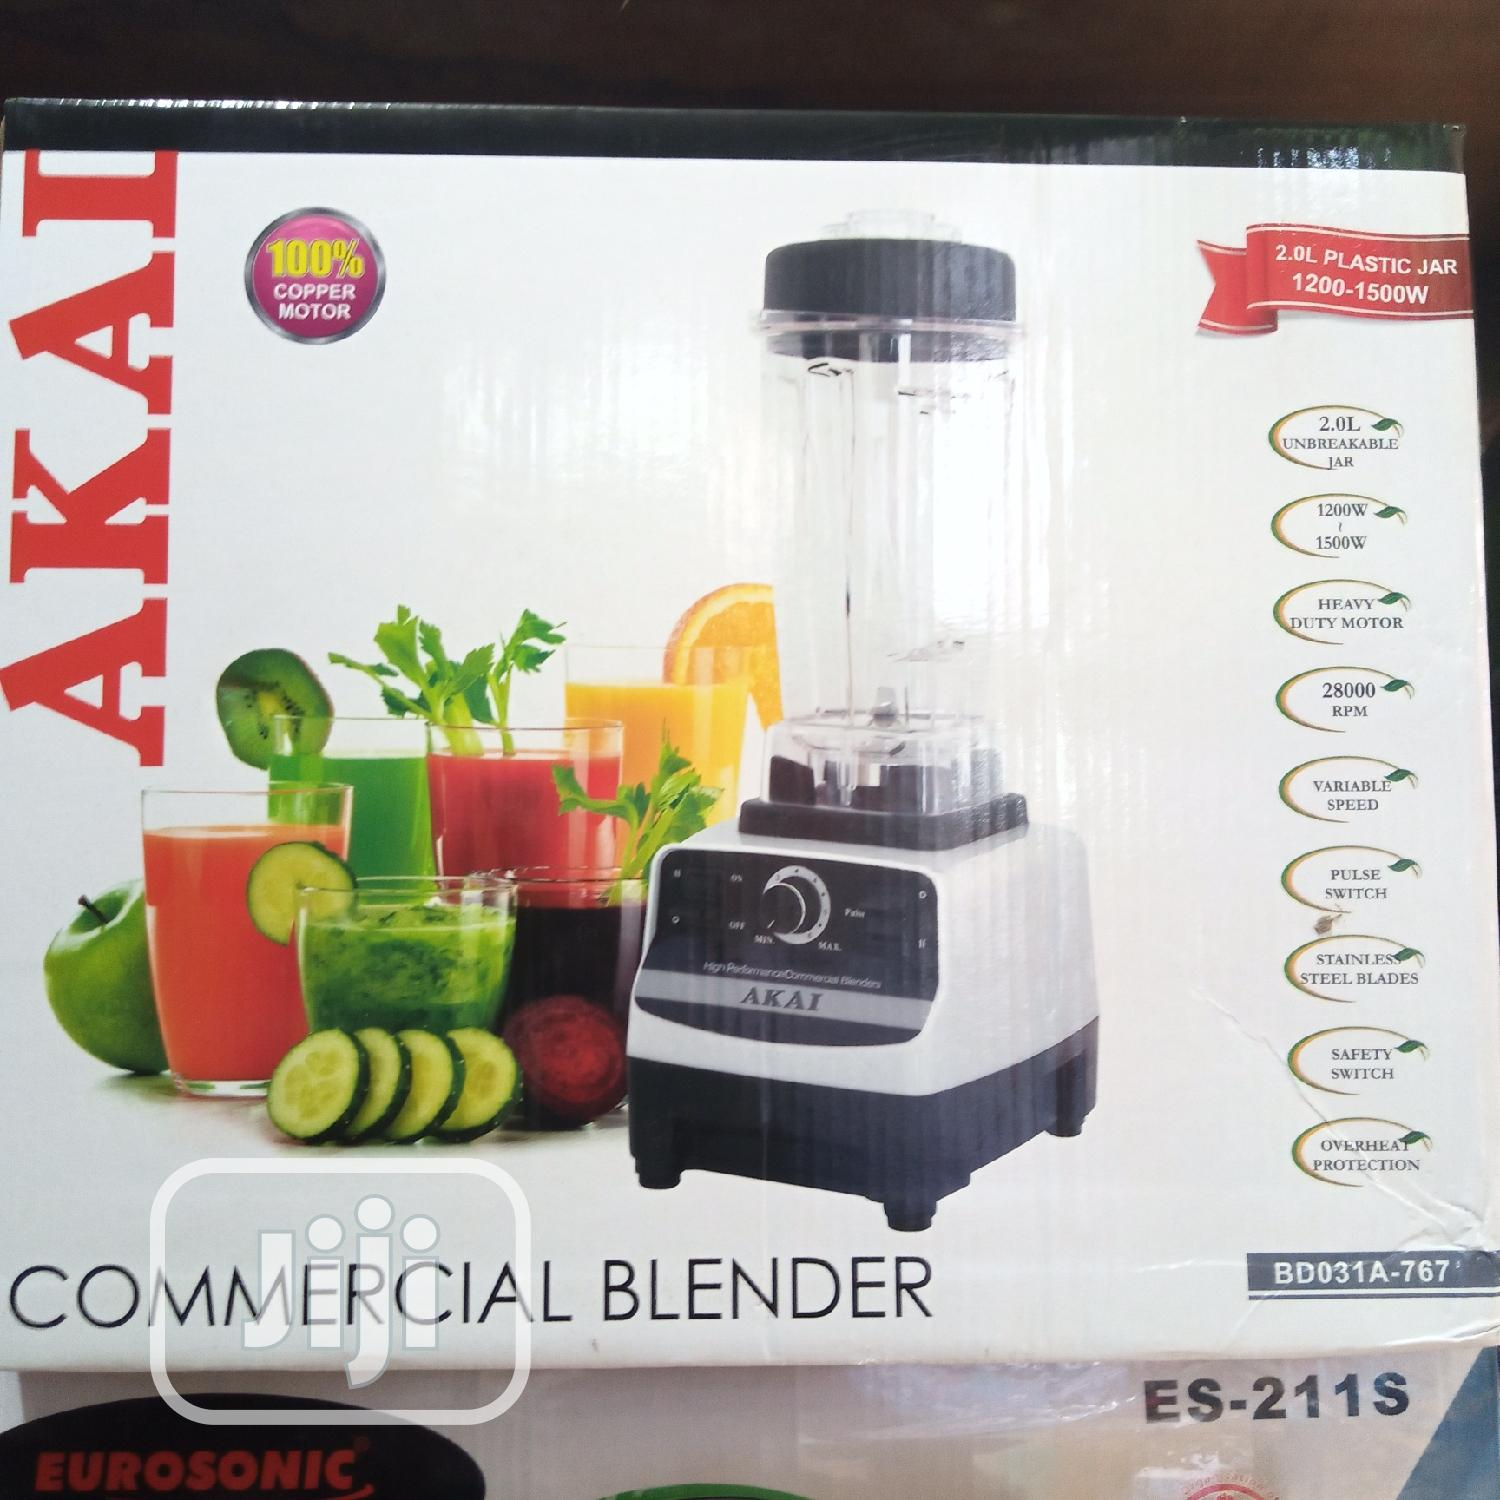 AKAI Heavy Duty Commercial Blender With Ice Crusher- 1500W